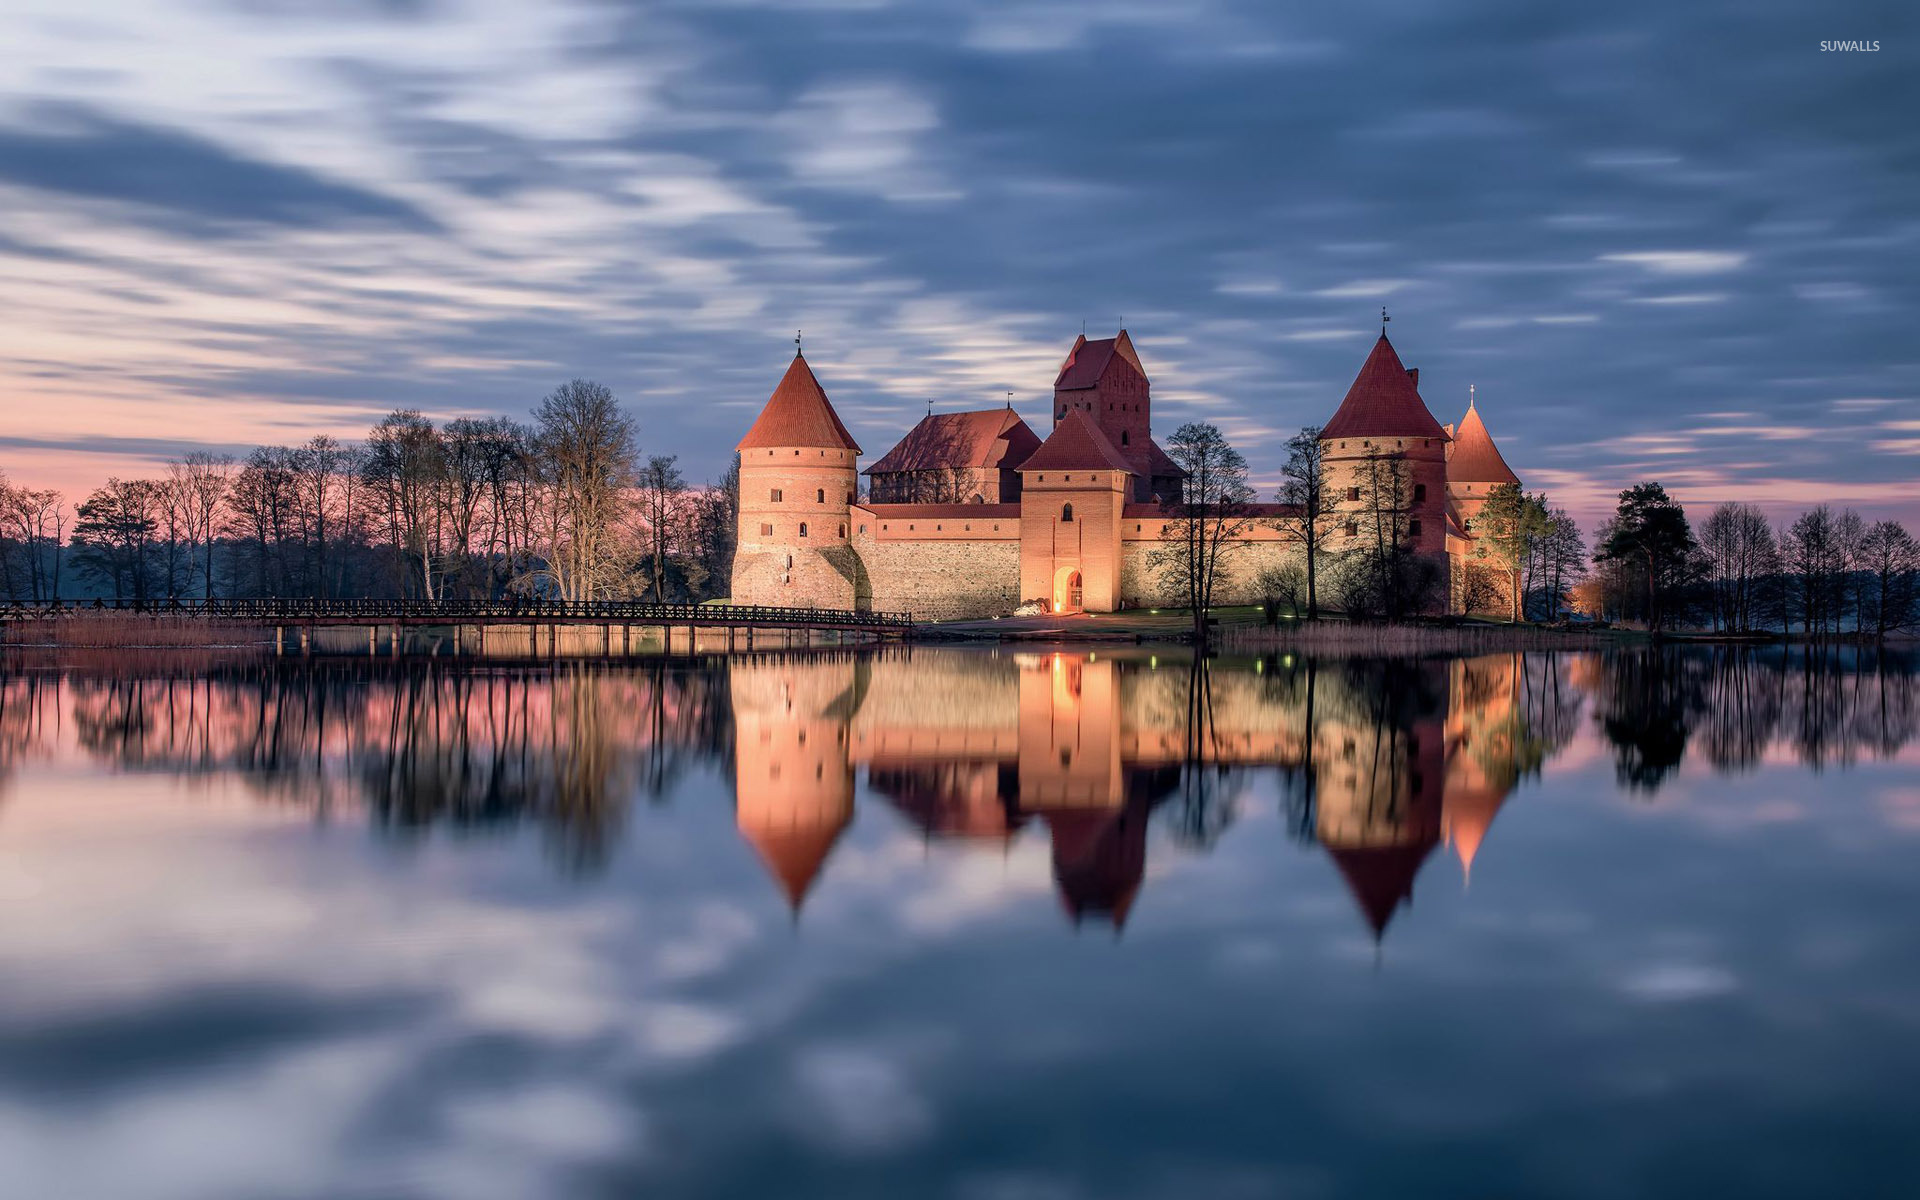 trakai-castle-lithuania-29200-1920×1200